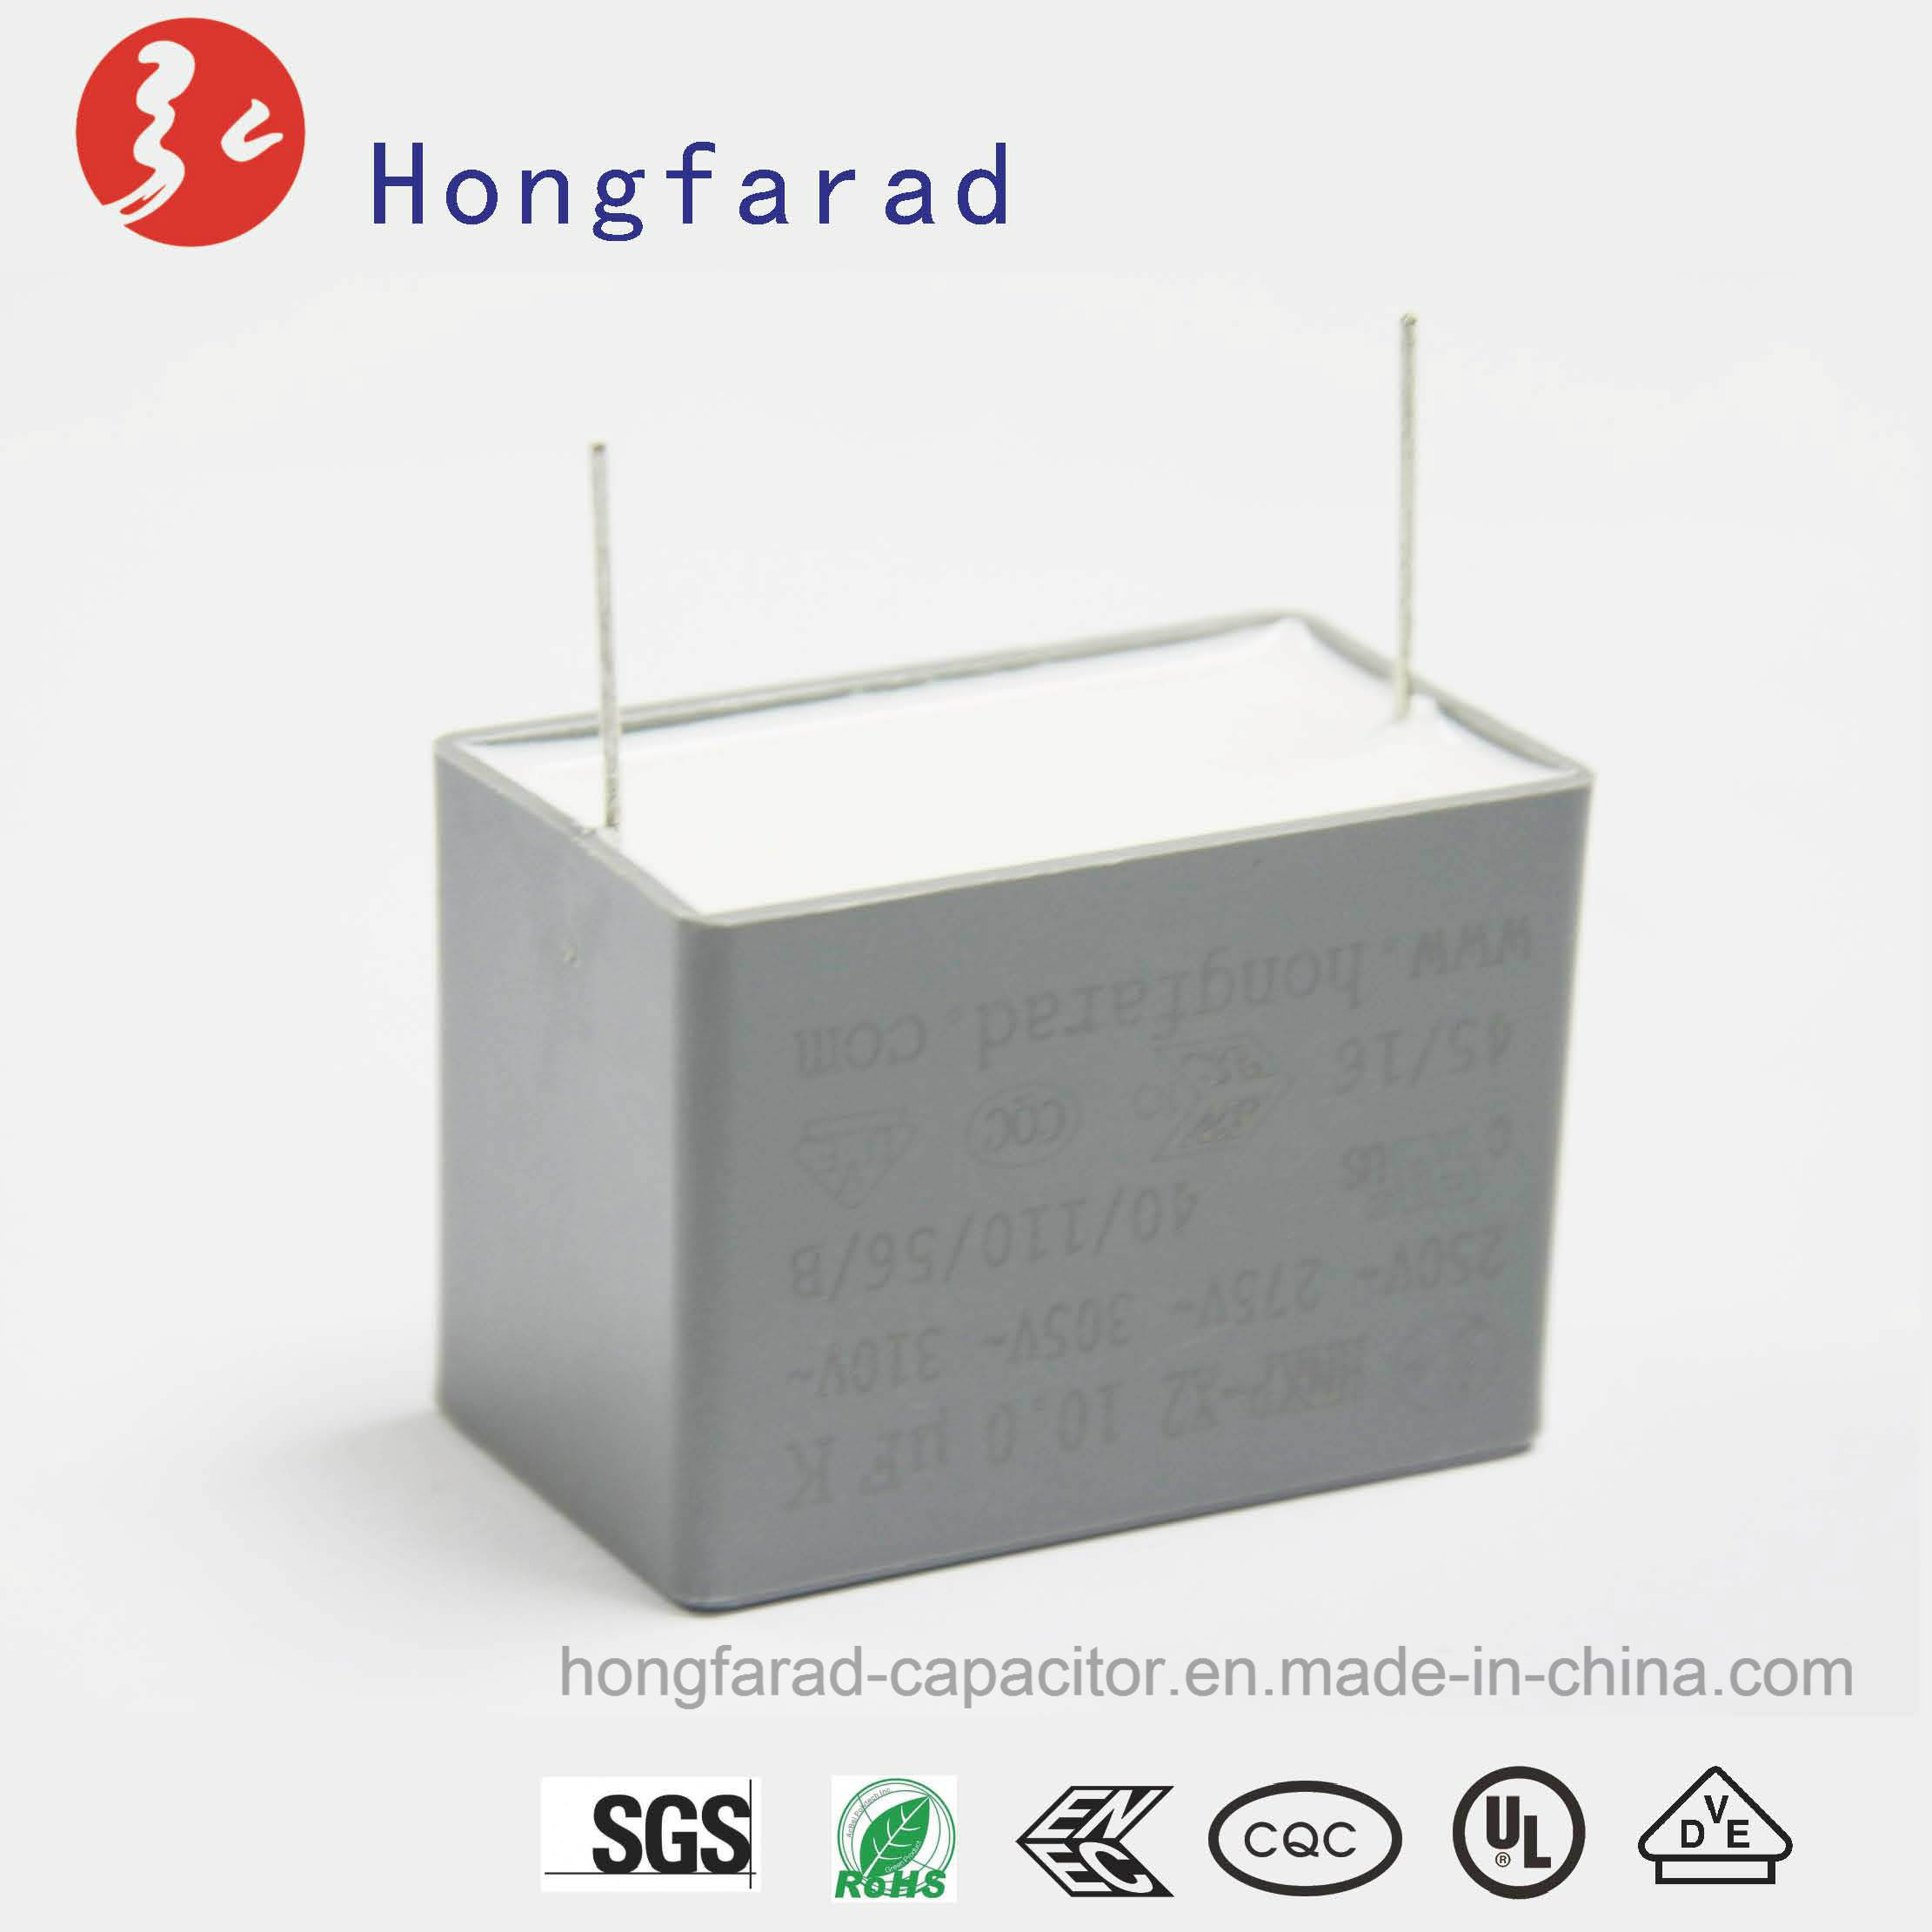 MKP X2 Metallized Polypropylene Film Capacitor with Safety Approvals